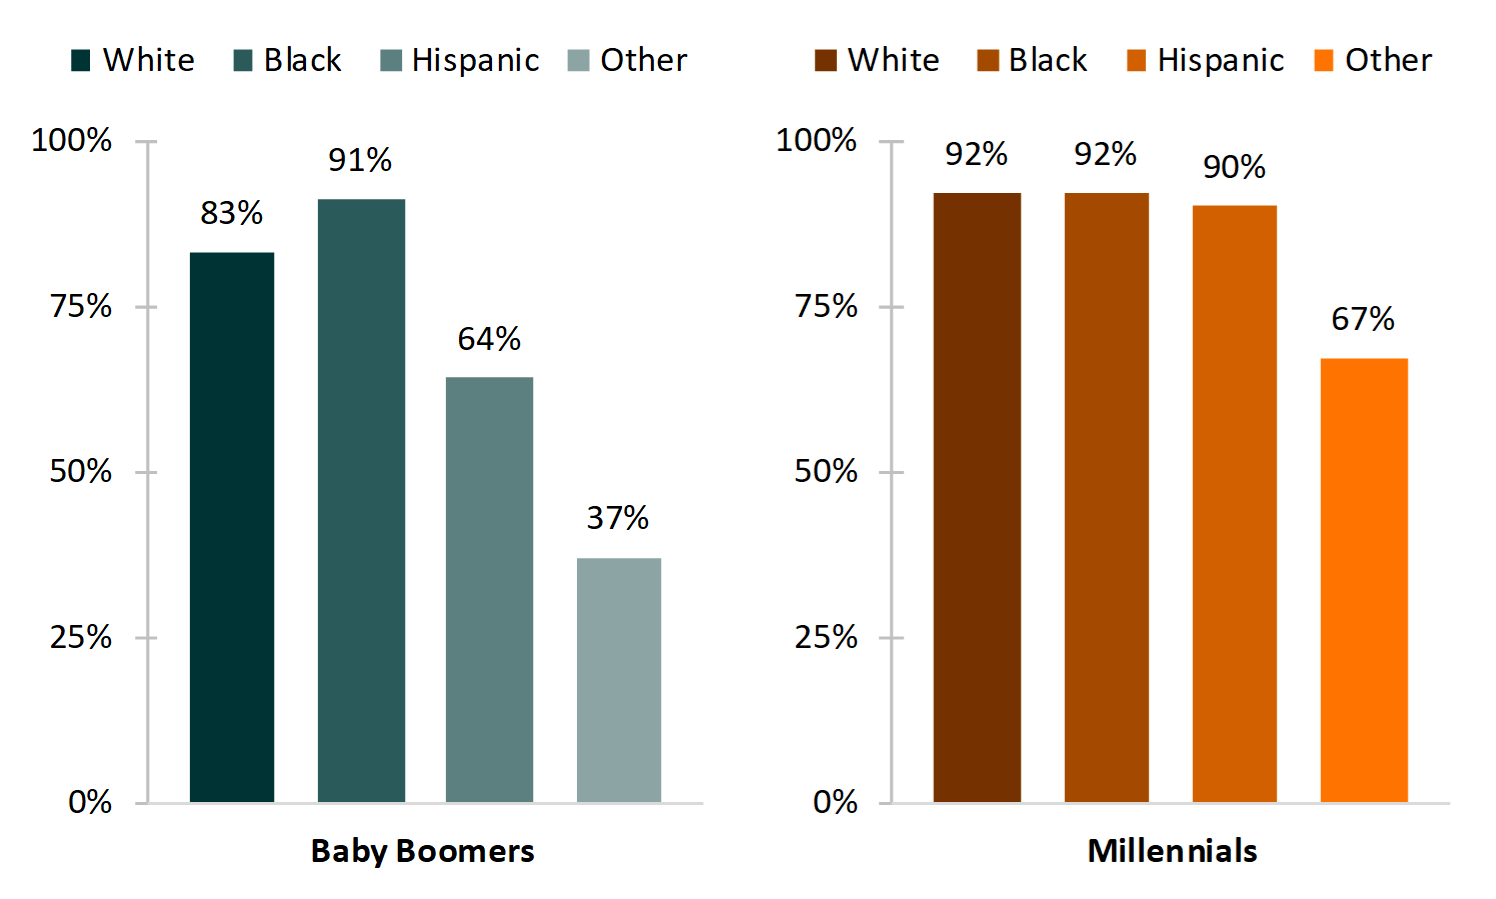 bar chart showing   Figure 2. Share of Women Who had Nonmarital Sex by Age 25, by Generation and Race/Ethnicity